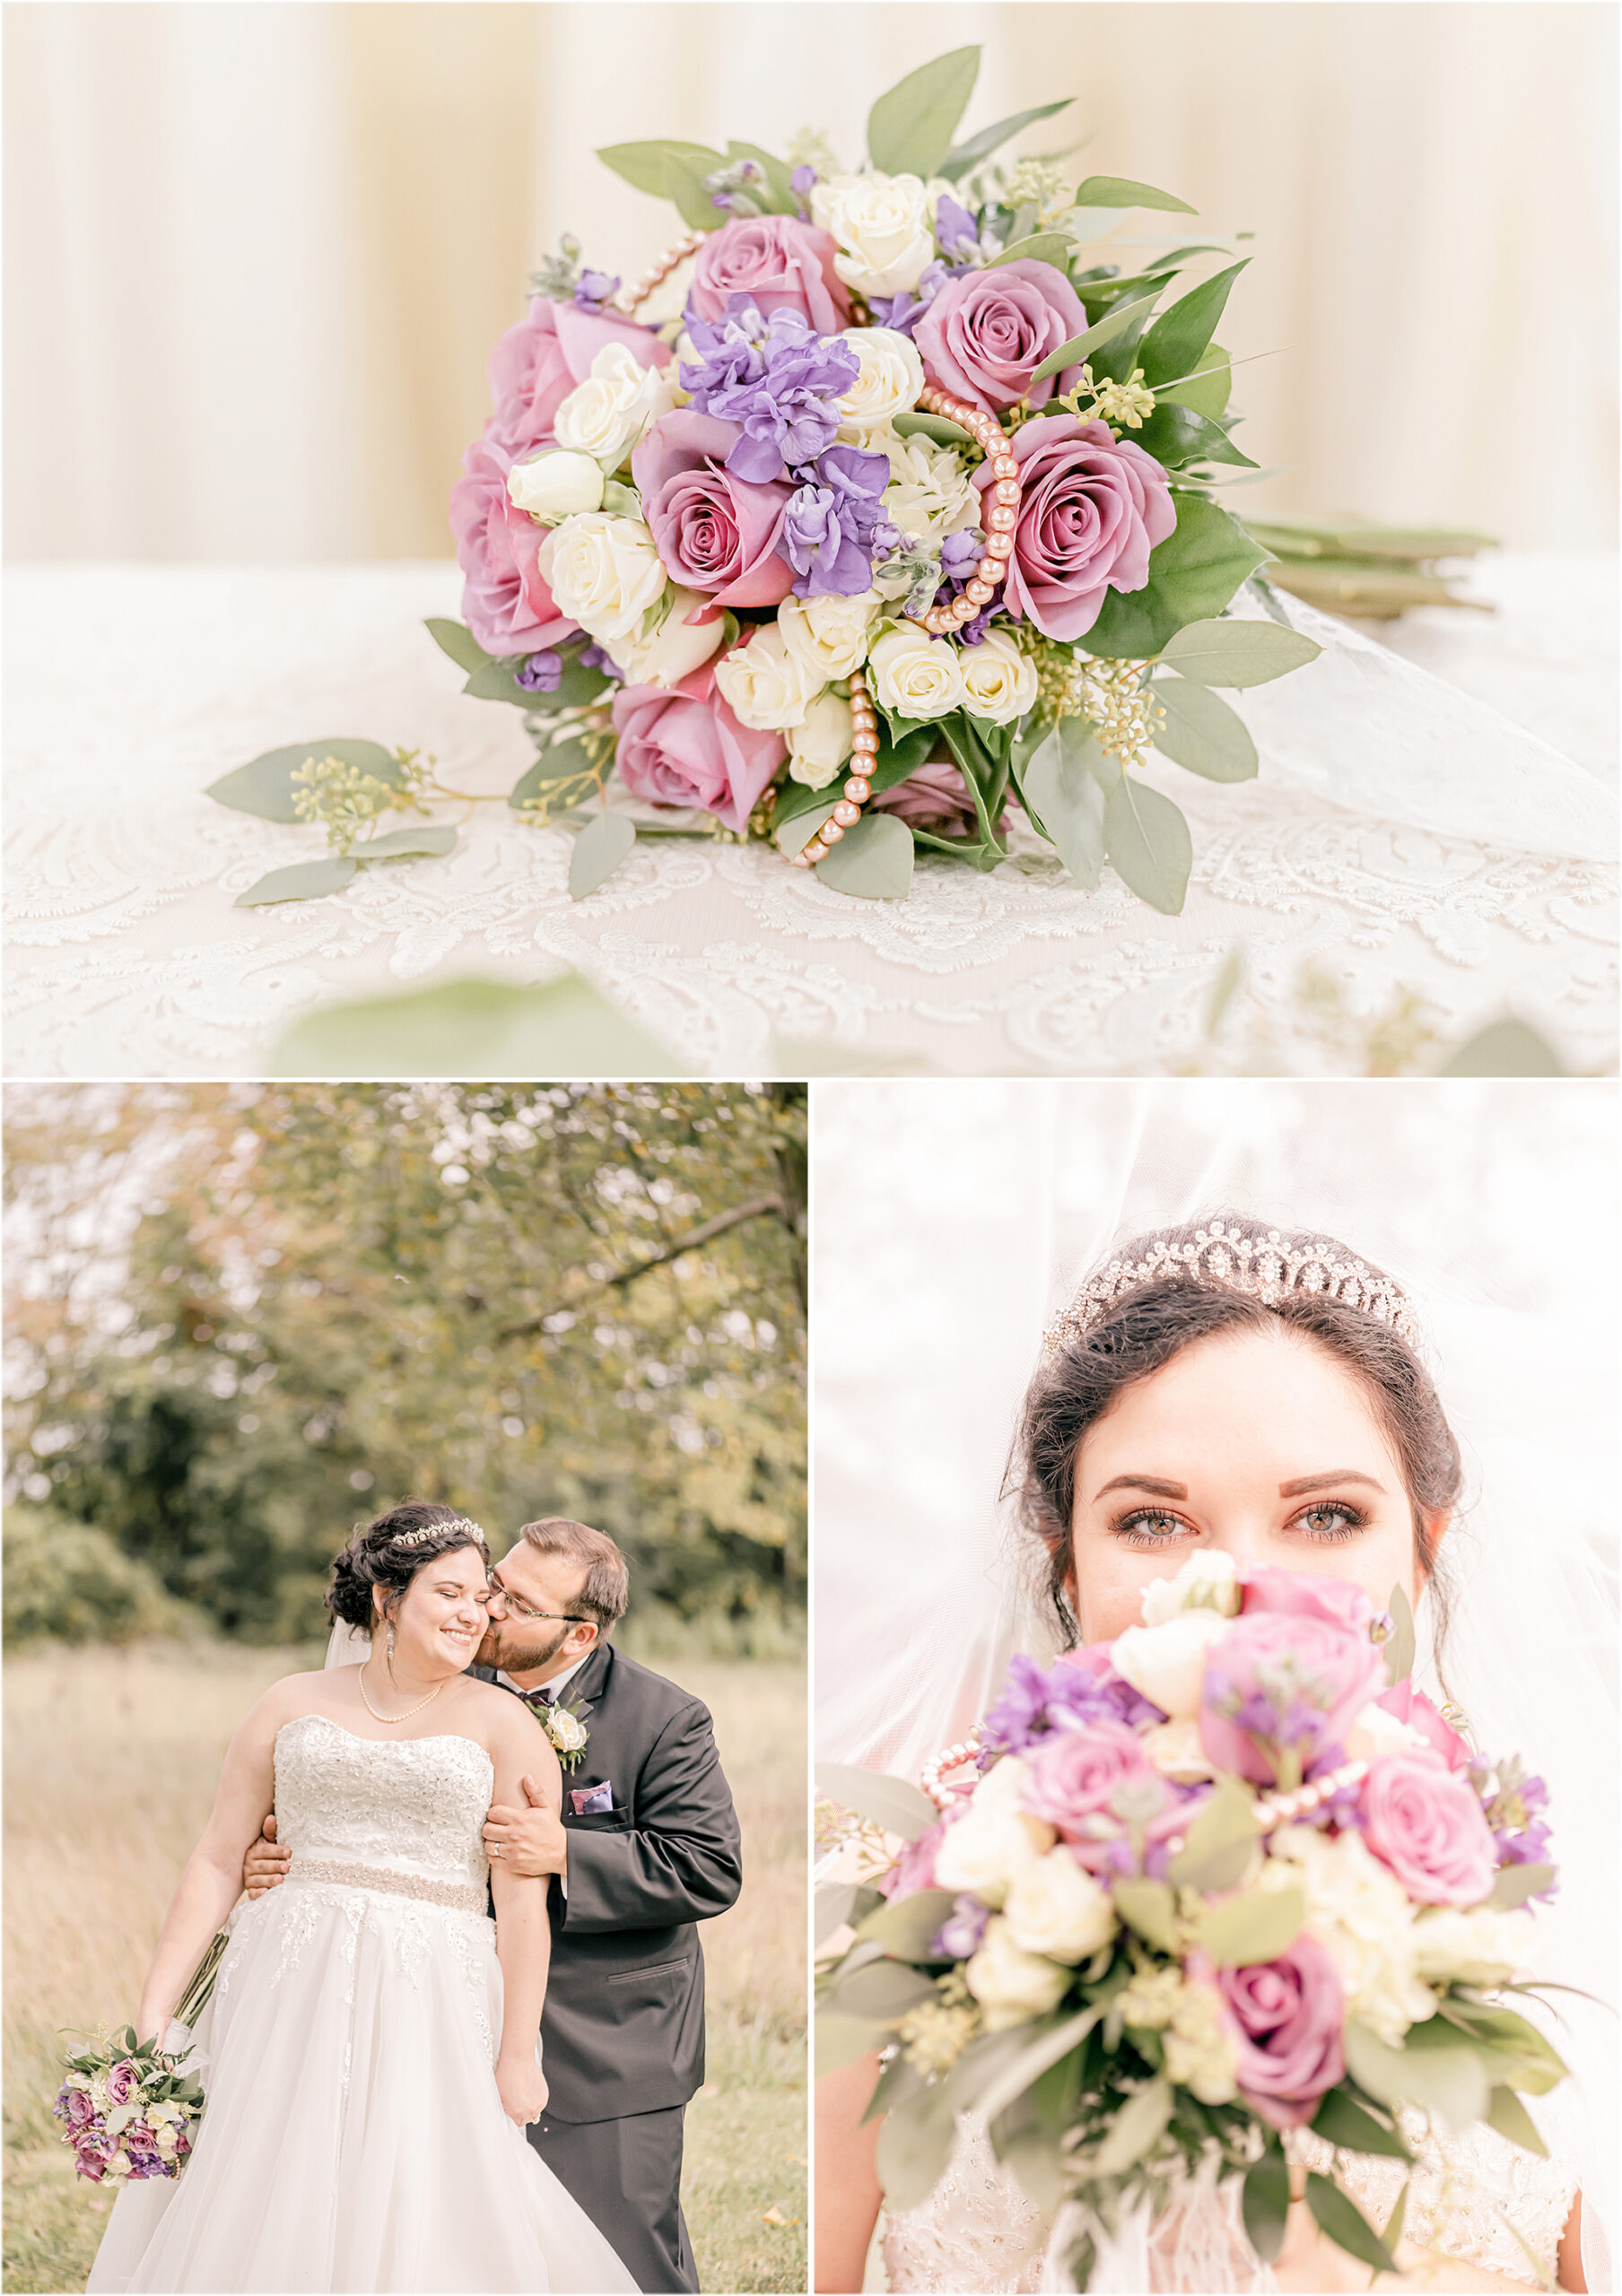 Lindsay-Adkins-Photography-Top10BridalBouquets2019-1